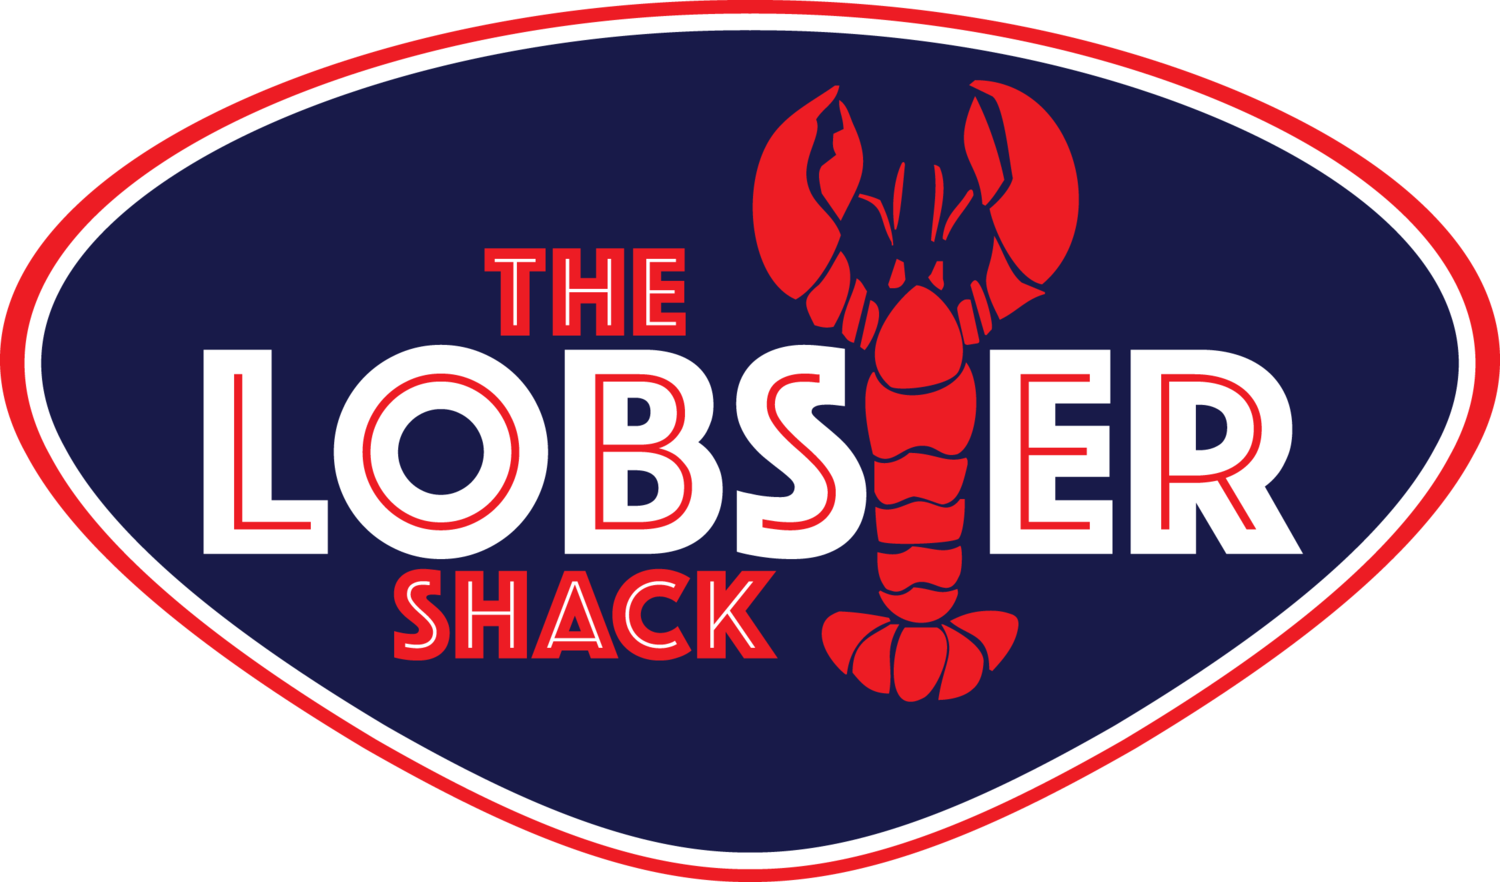 Joes crab shack png. The lobster